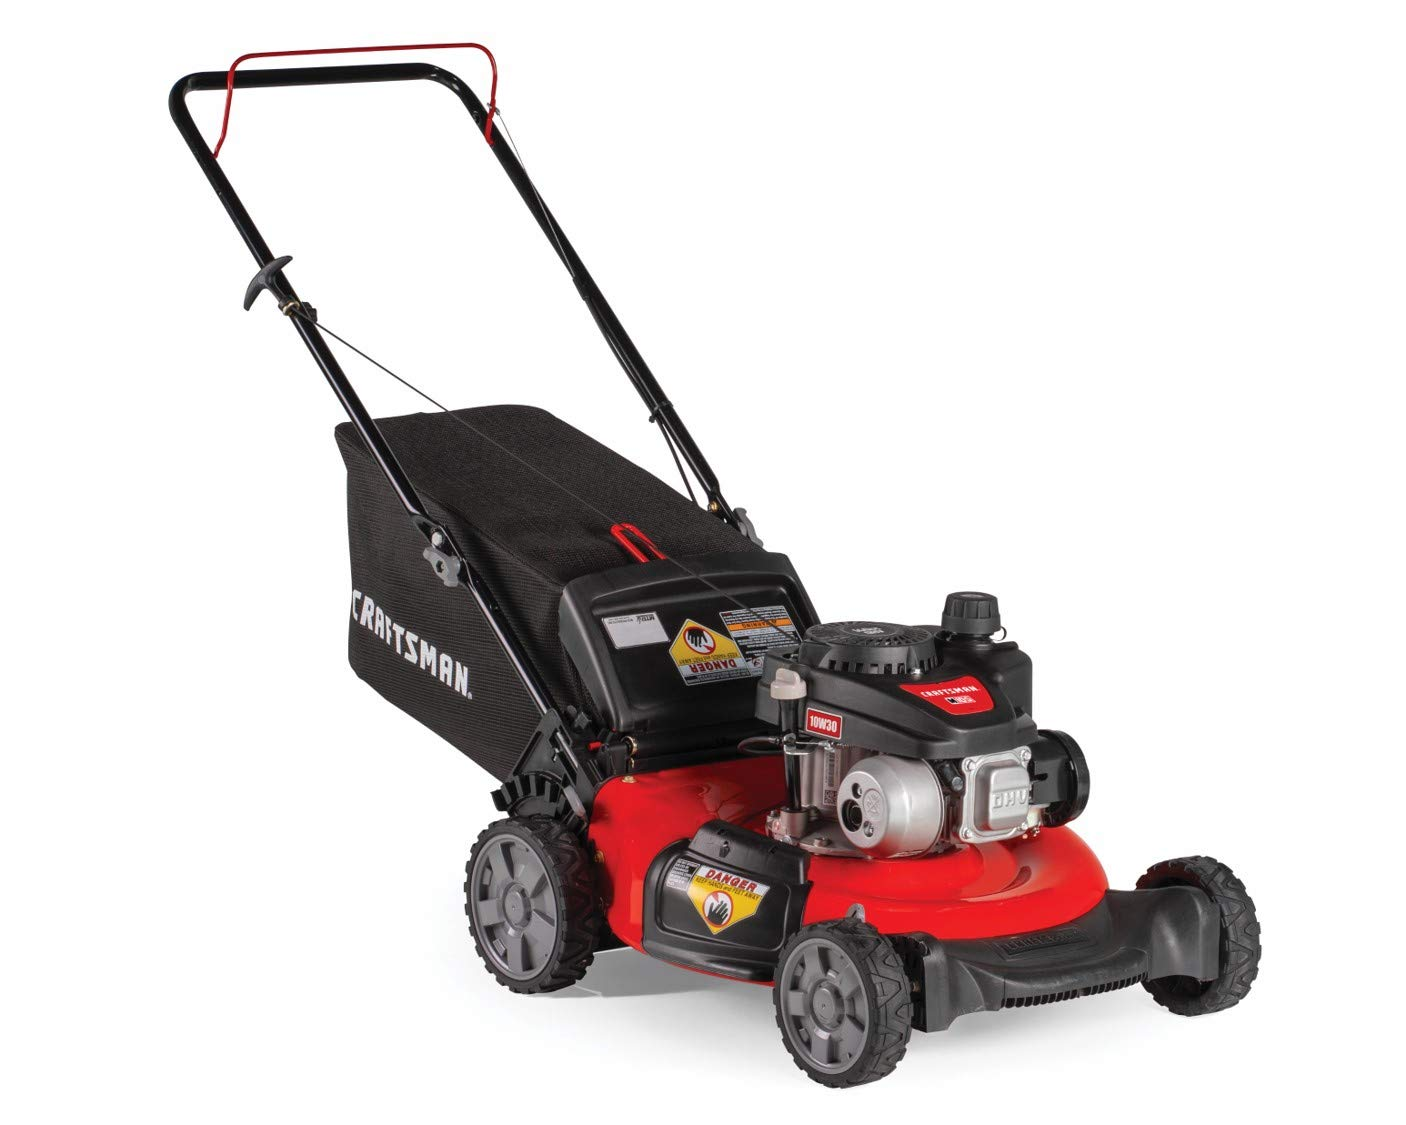 """Craftsman M105 140cc 21-Inch 3-in-1 Gas Powered Push Lawn Mower with Bagger, 1-in, Liberty Red 2 Your purchase includes One Craftsman M105 140cc Gas powered Push Lawn Mower, One bagger and engine oil Lawn Mower width – 21"""" 